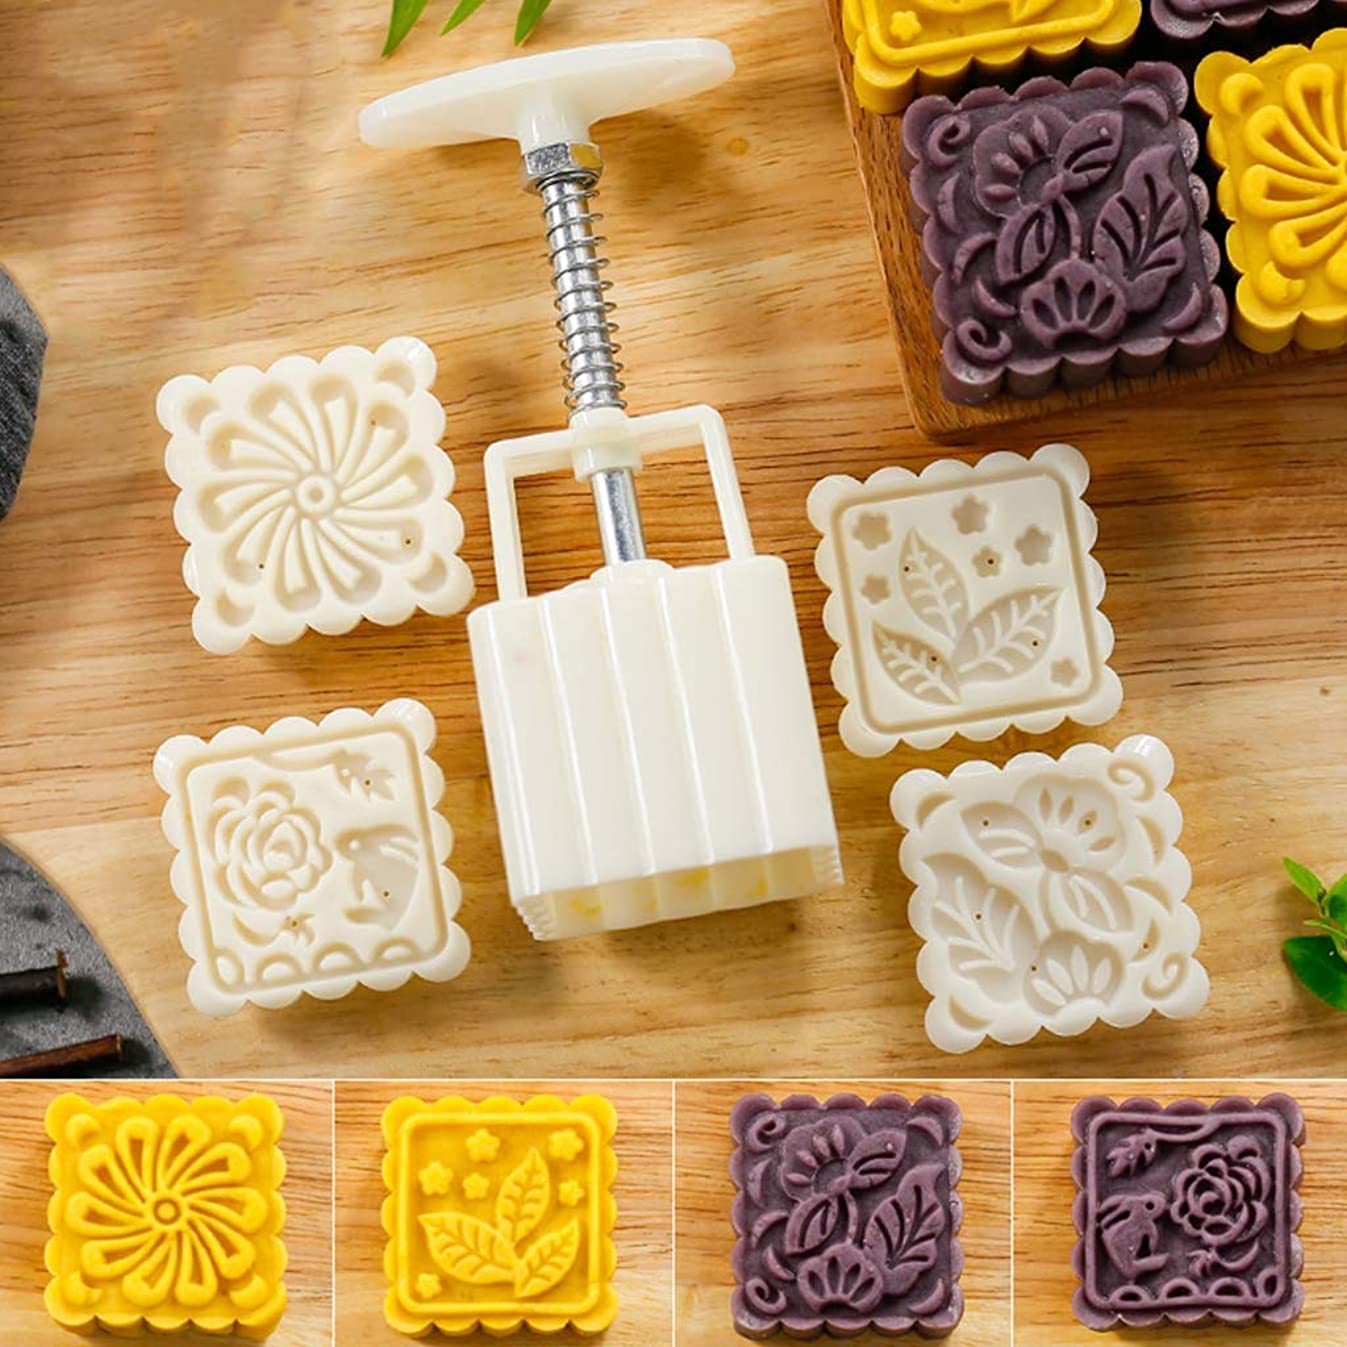 Fullive 75G Mooncake Mold - Square Hand Press Mooncake Mold DIY Baking Mold,Soap Mold,Bath Mold with 4 Random Stamps for Mother